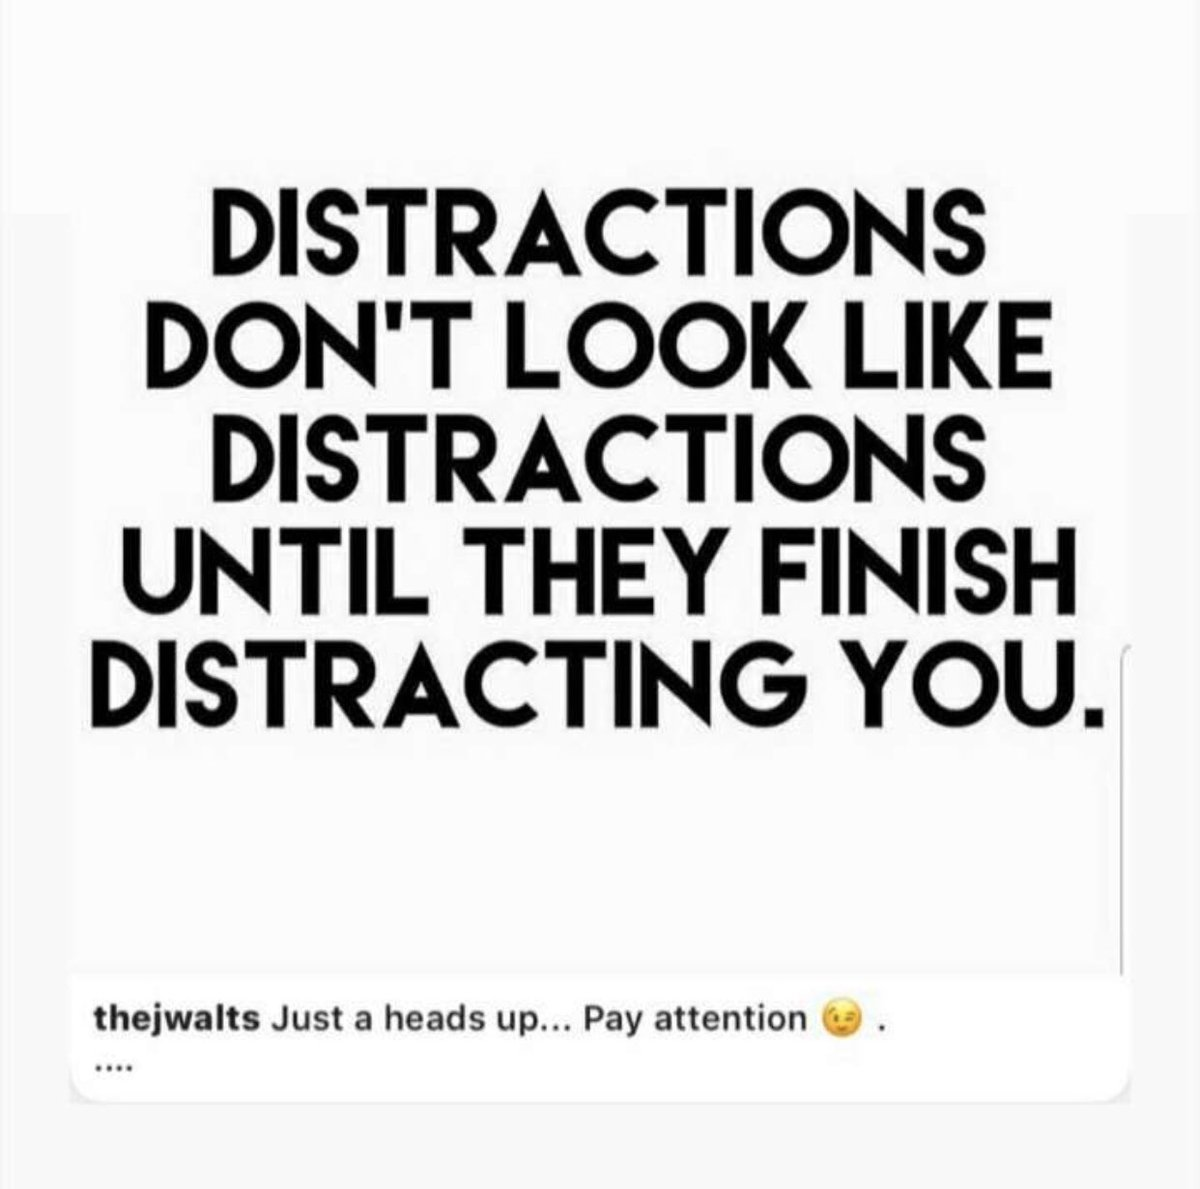 #Pay #attention in everything you do in #lifepic.twitter.com/f6sGpmVx1J